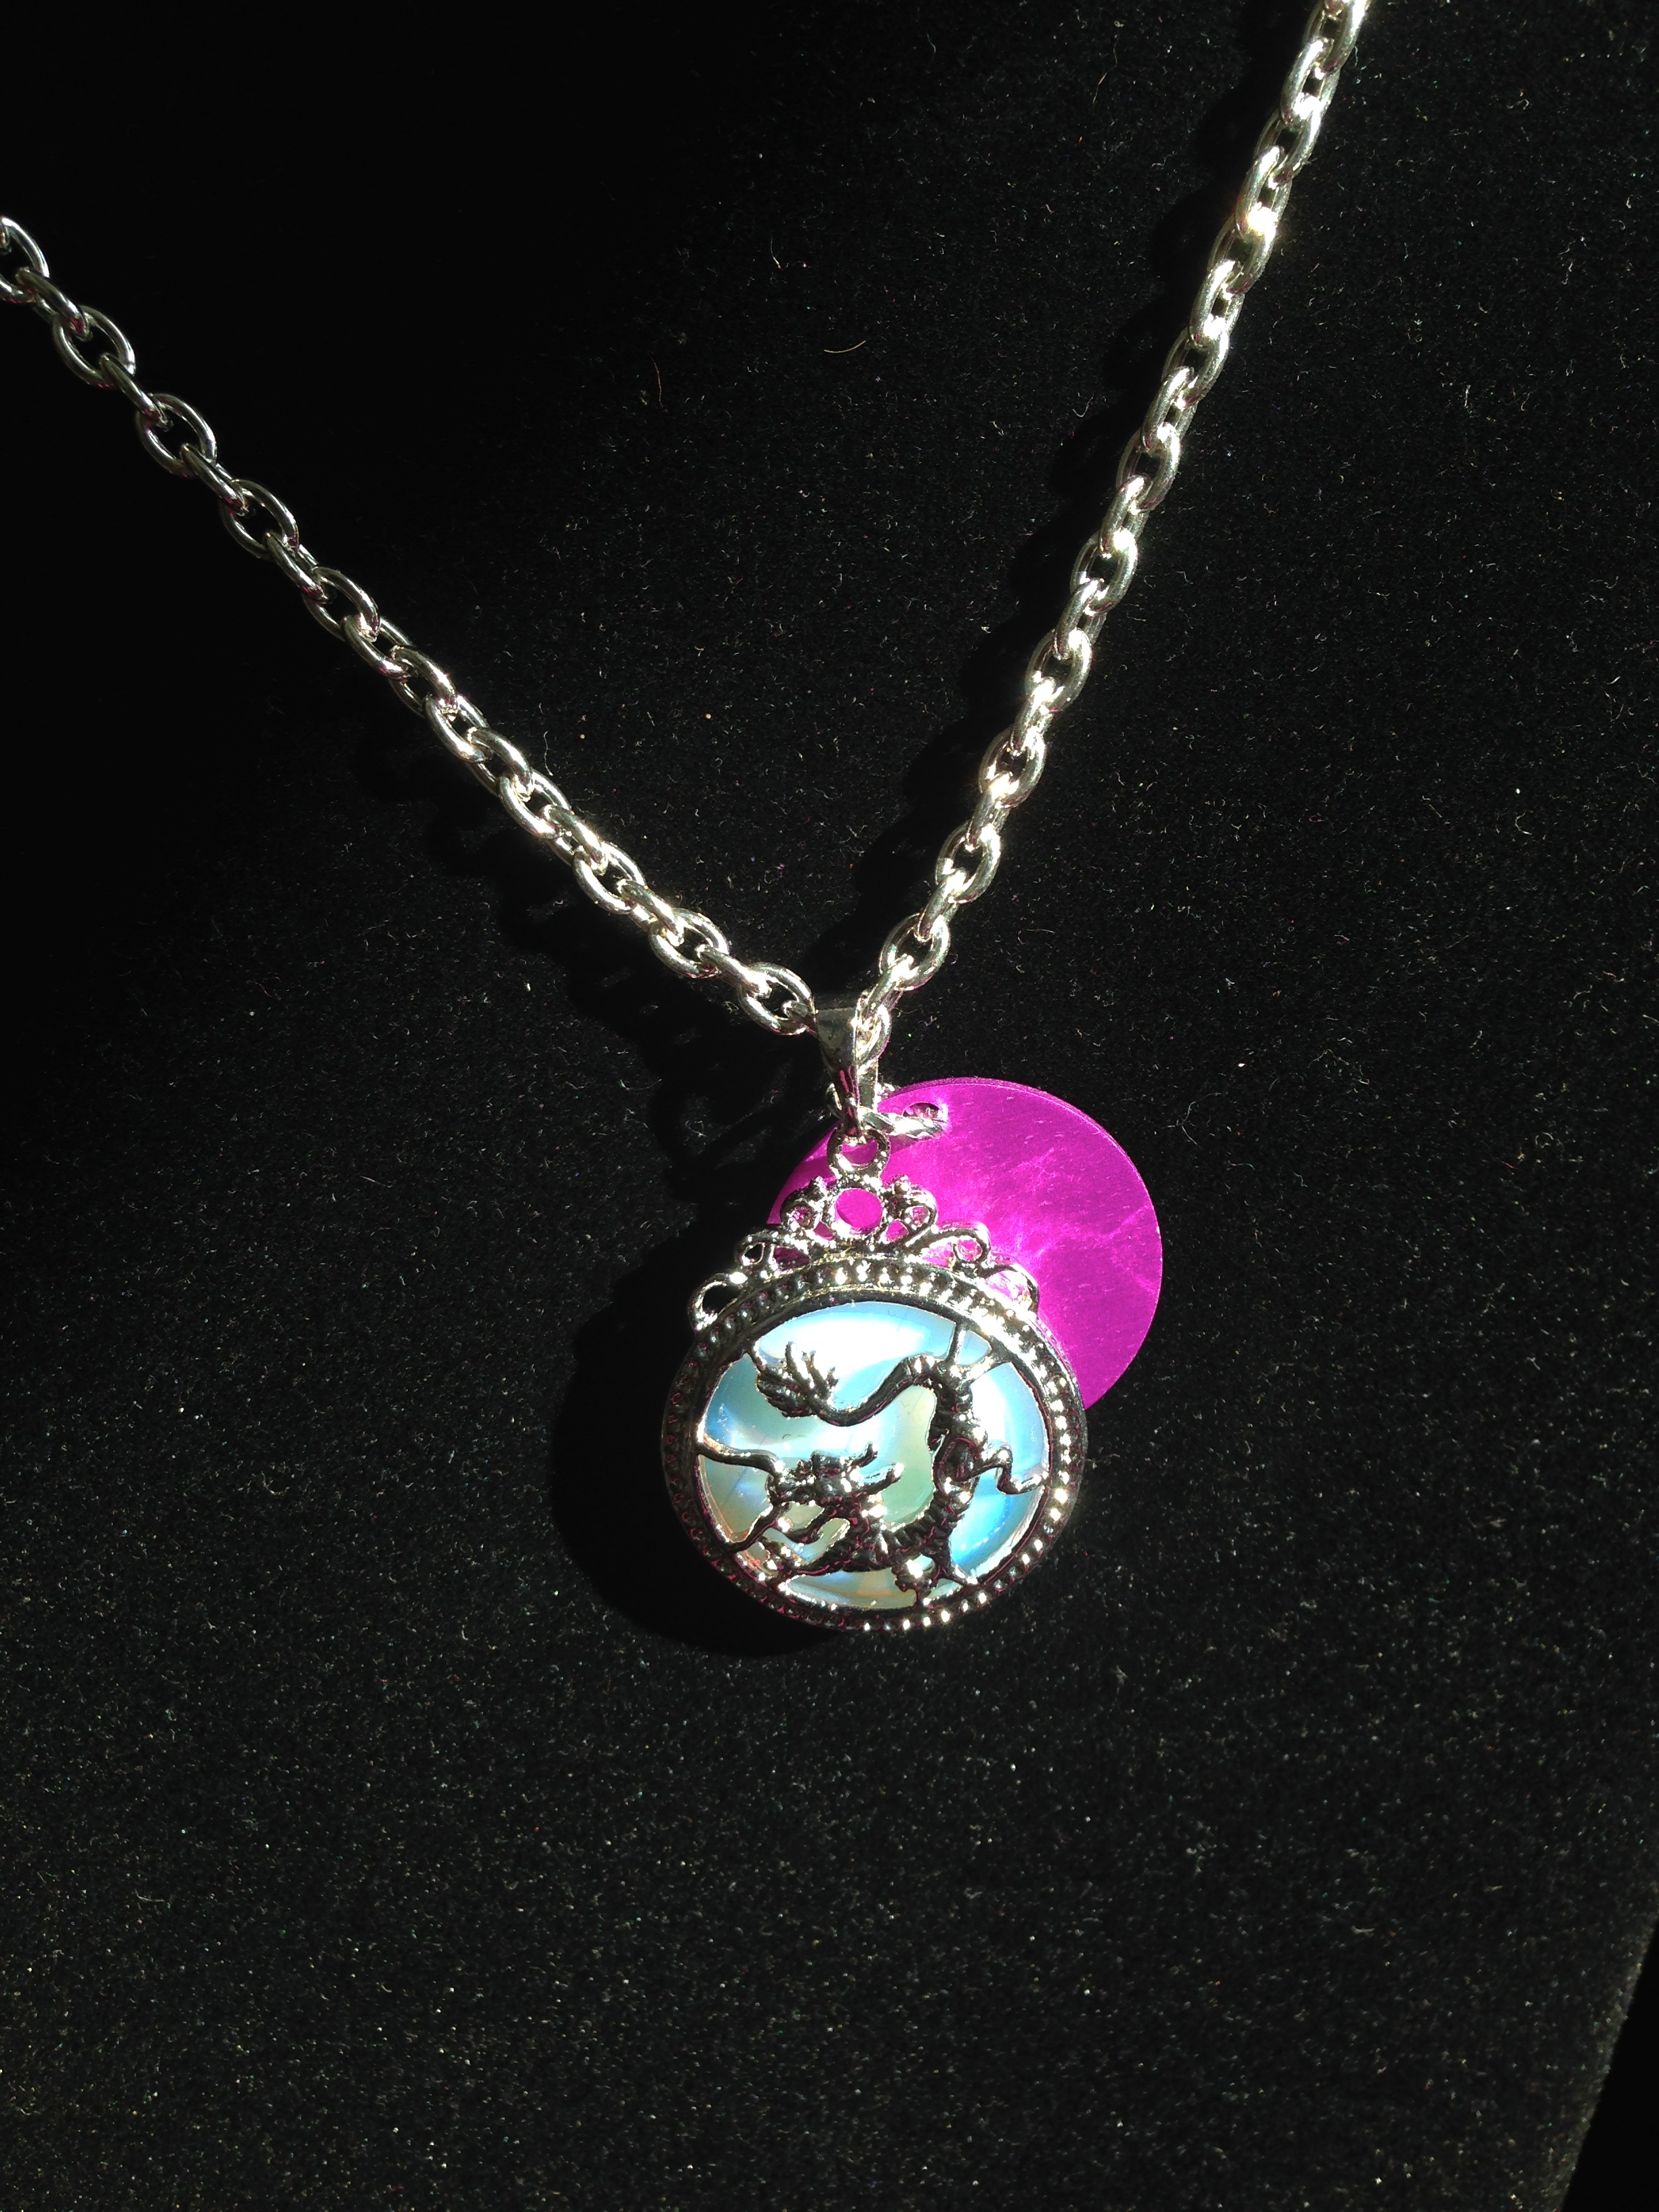 Dragon Opalite Necklace with Purple Energy Disk